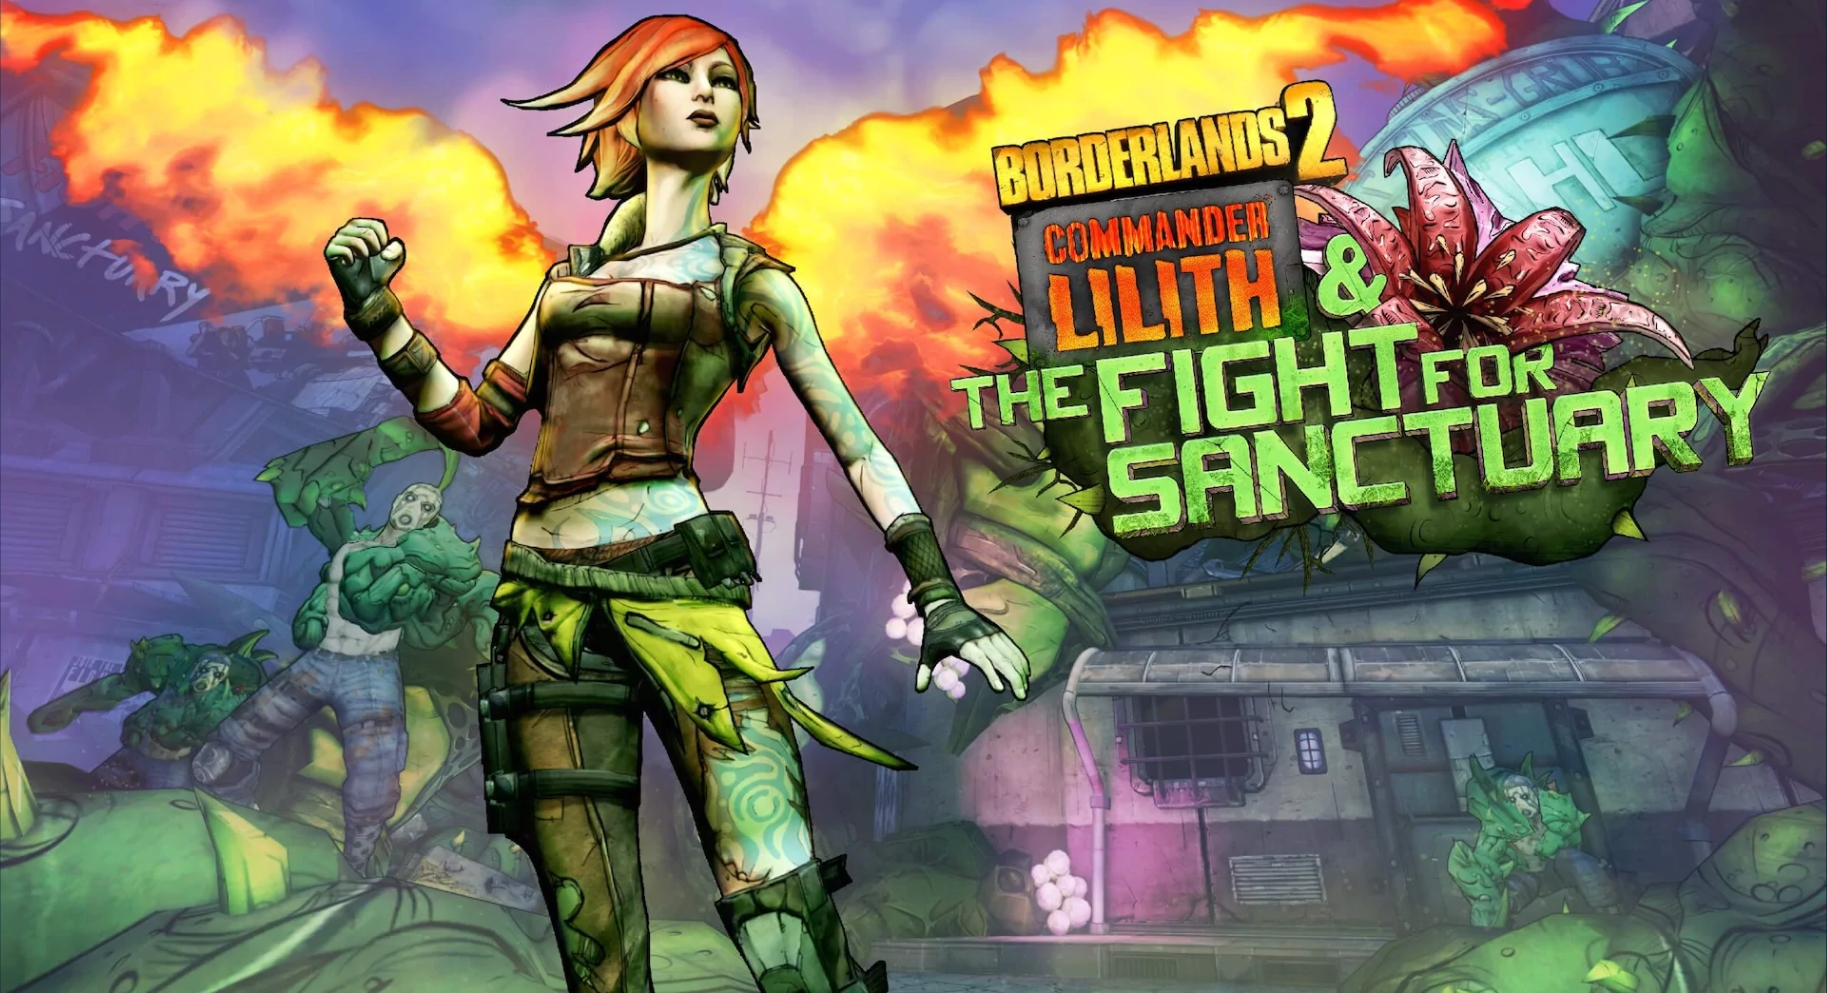 Borderlands 2 - Commander Lilith & der Kampf um Sanctuary